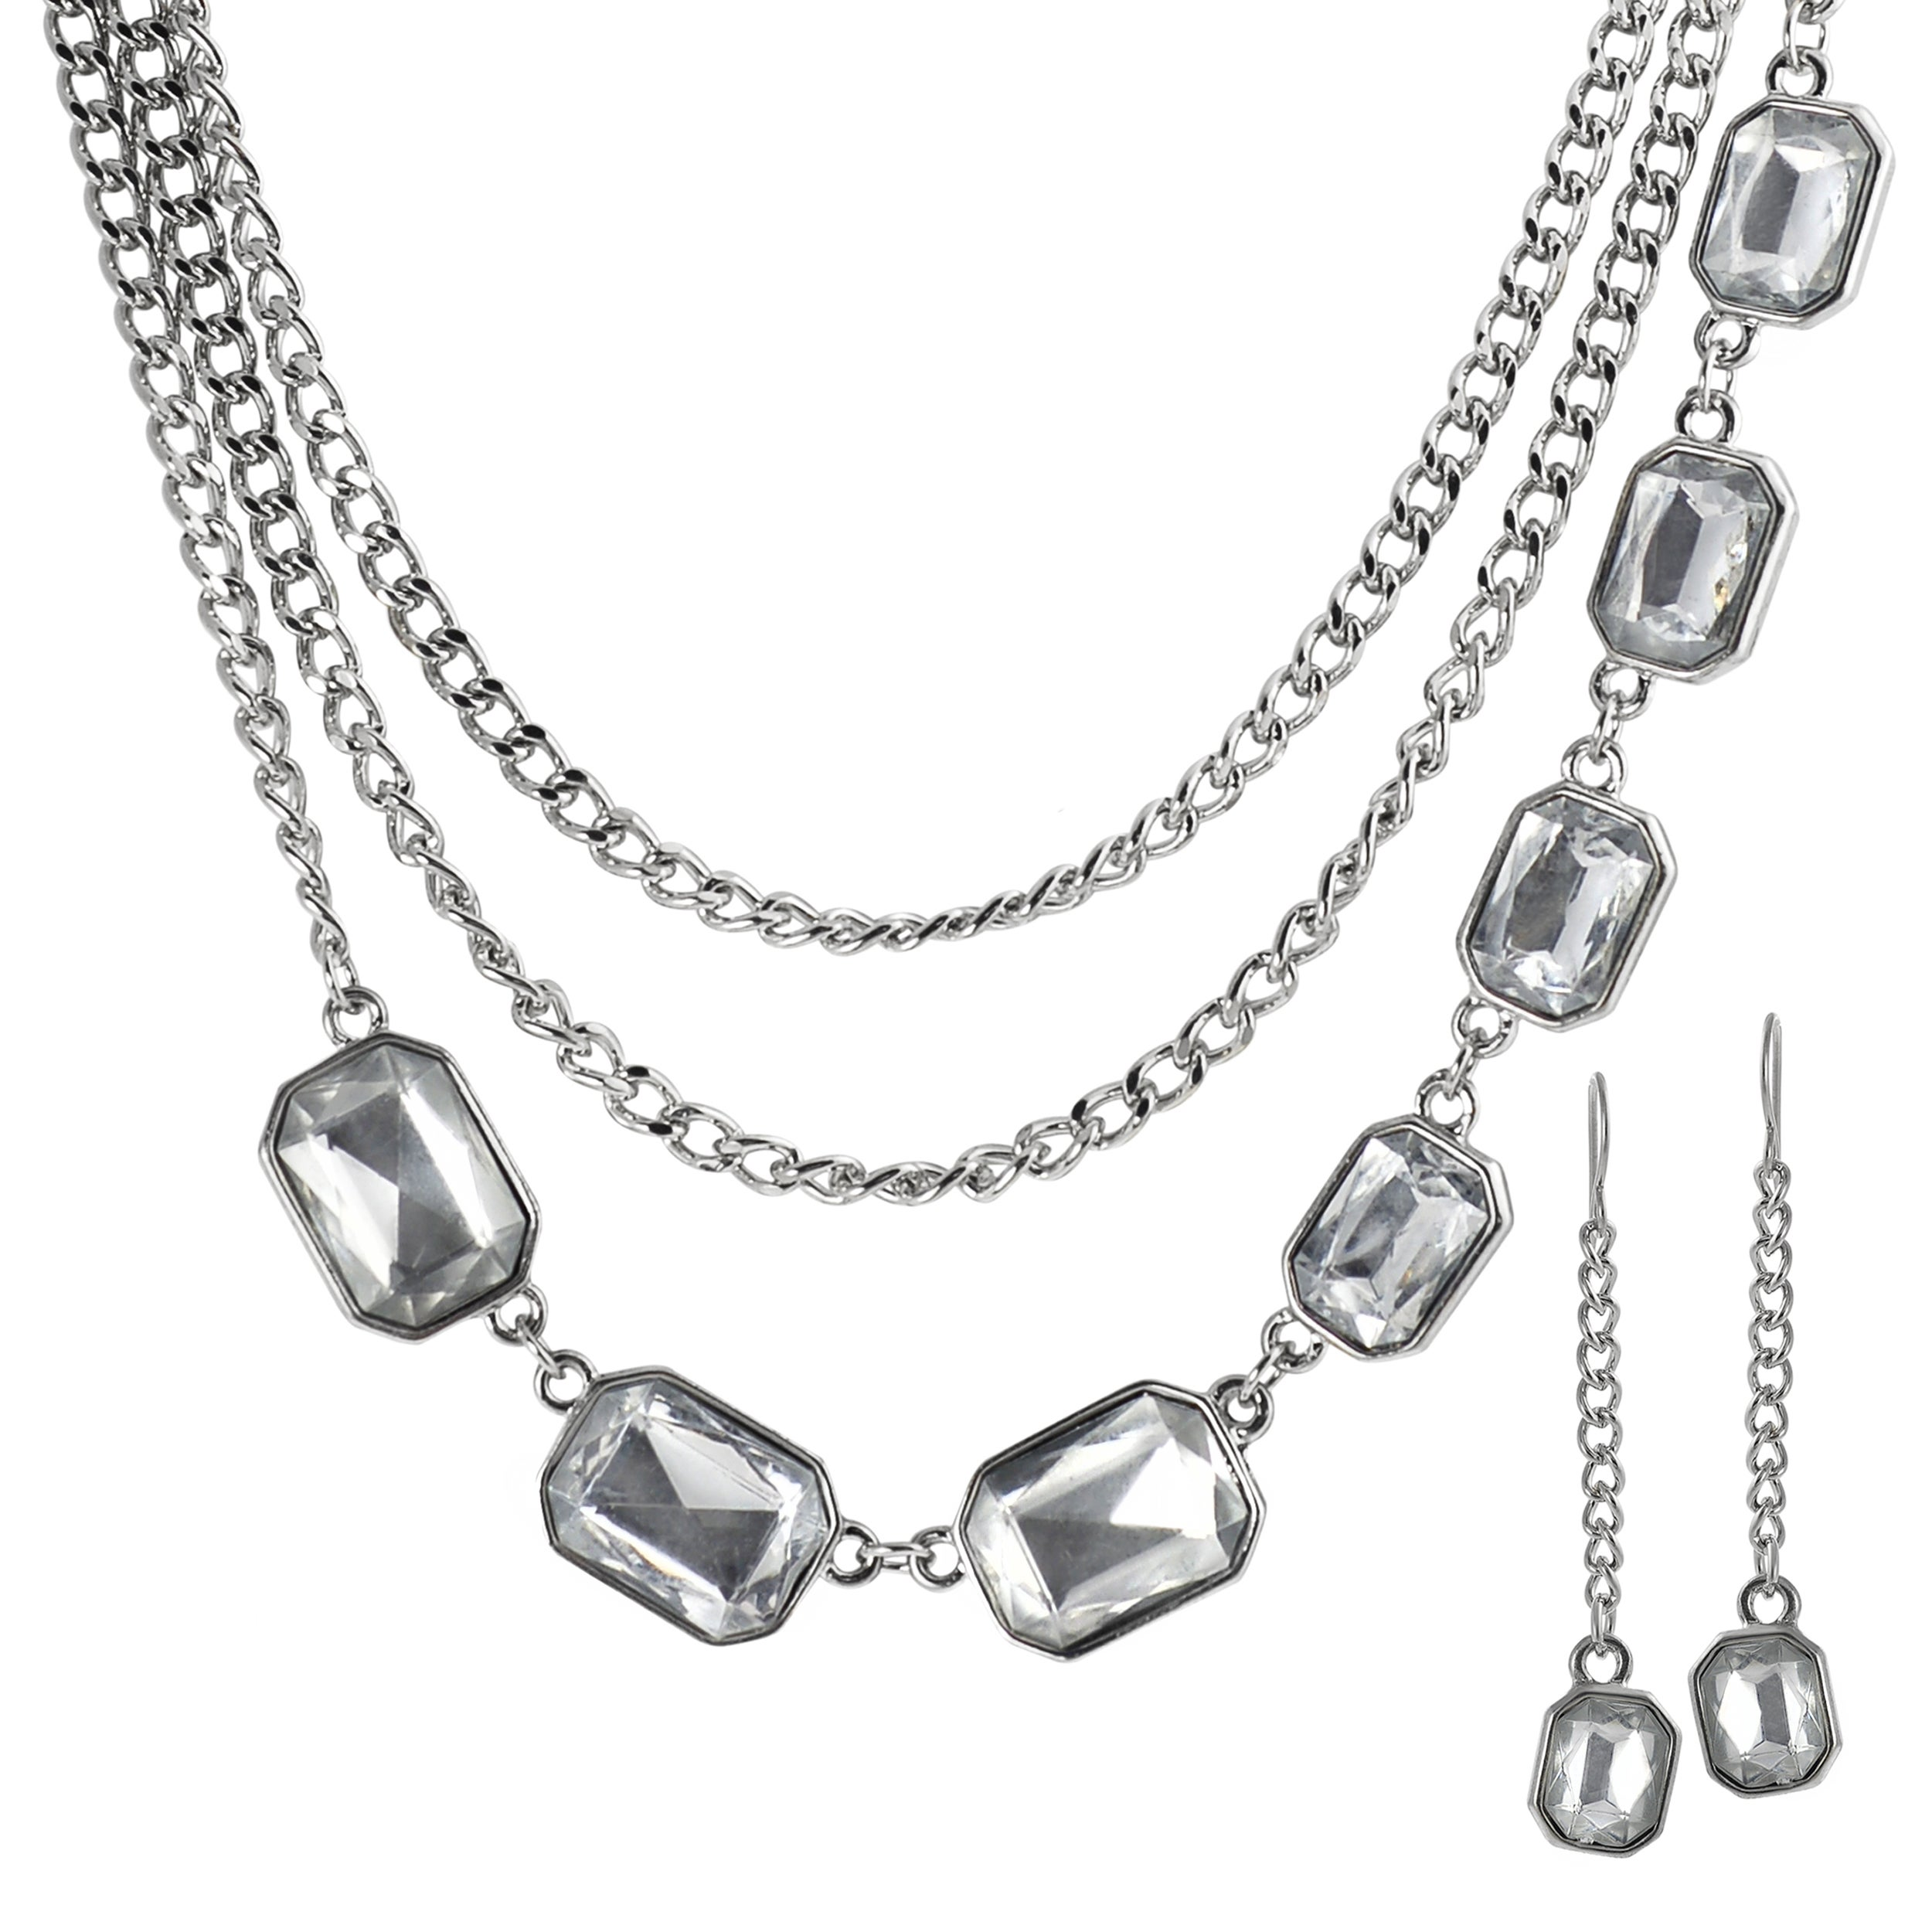 Journee Collection Silvertone Base Chain Crystal Necklace Earring Set